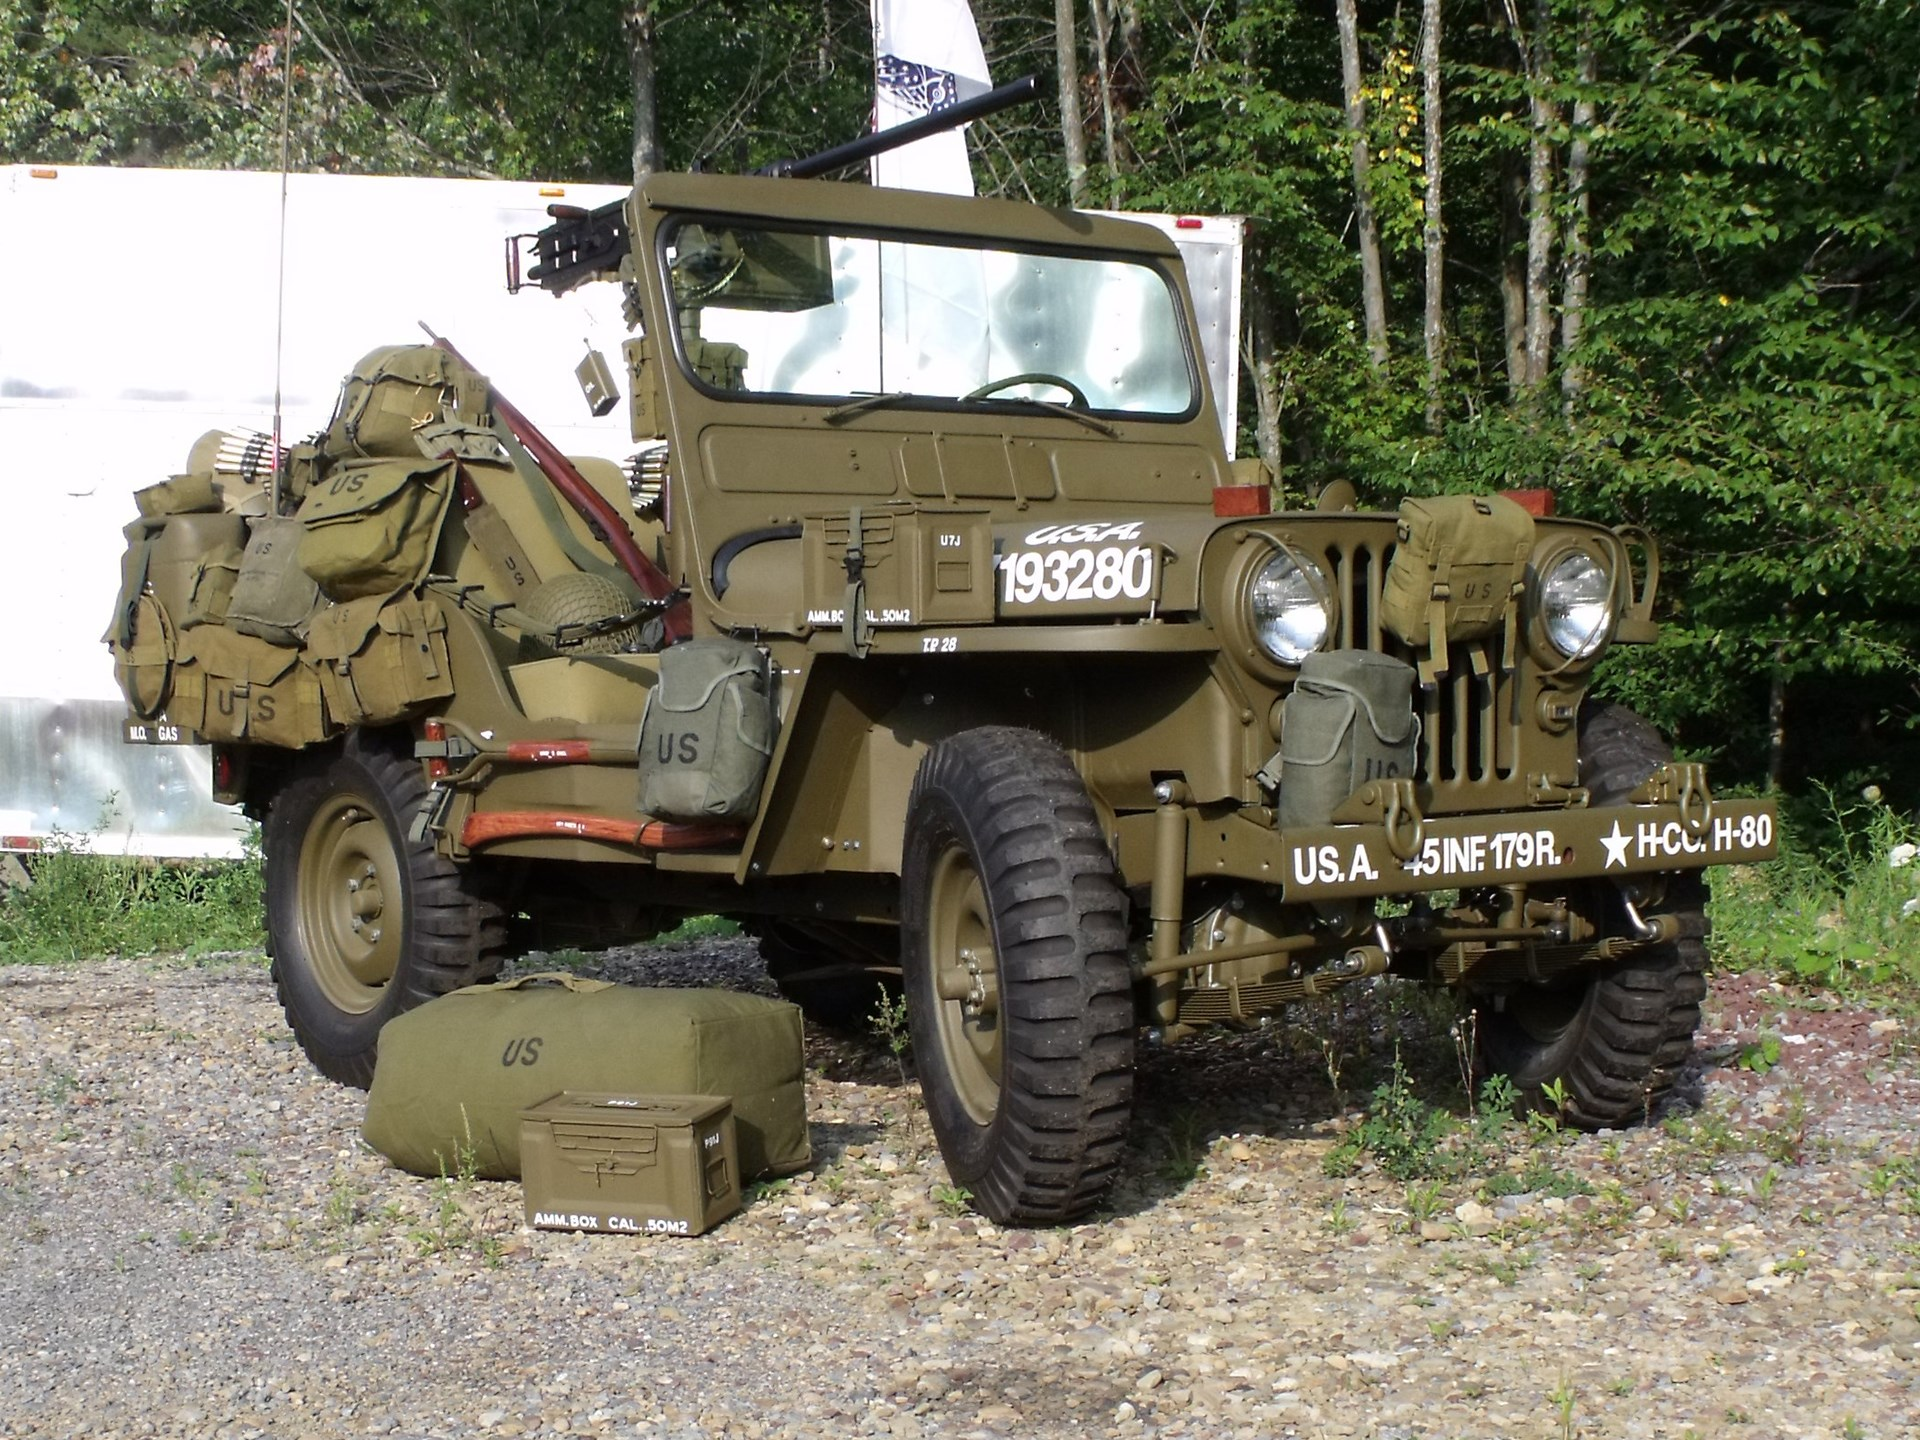 Rm Sothebys 1952 Willys M38 Korean War Military Jeep Hershey 2011 1950 Cj 3a For Sale